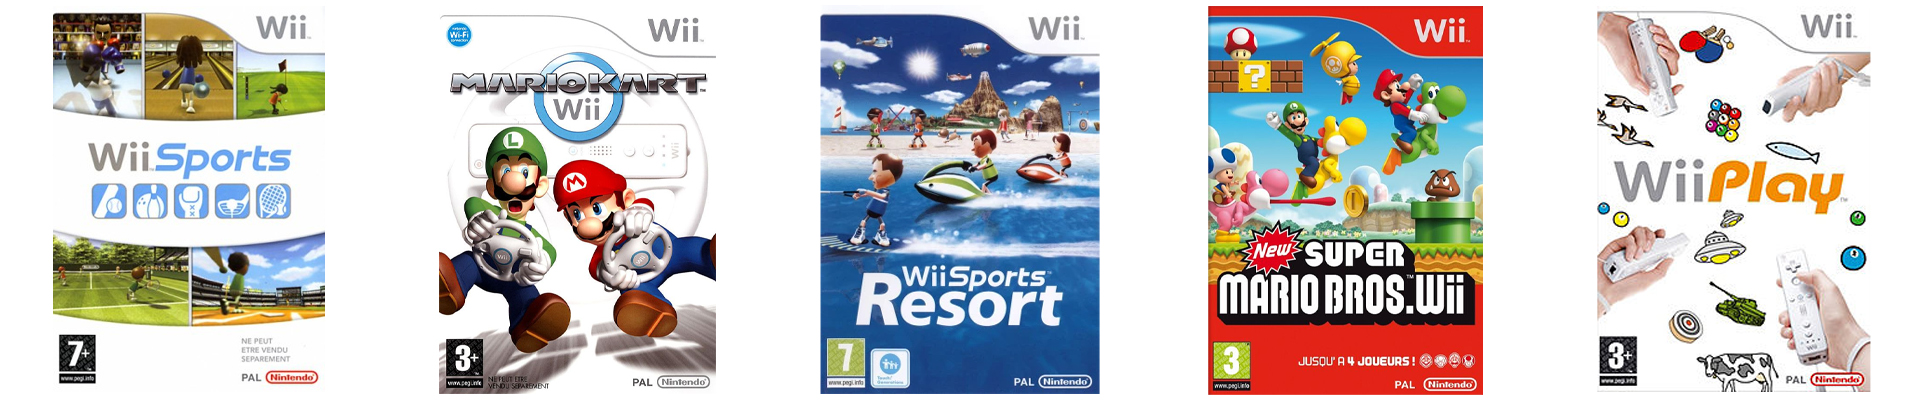 Top 5 jeux Wii